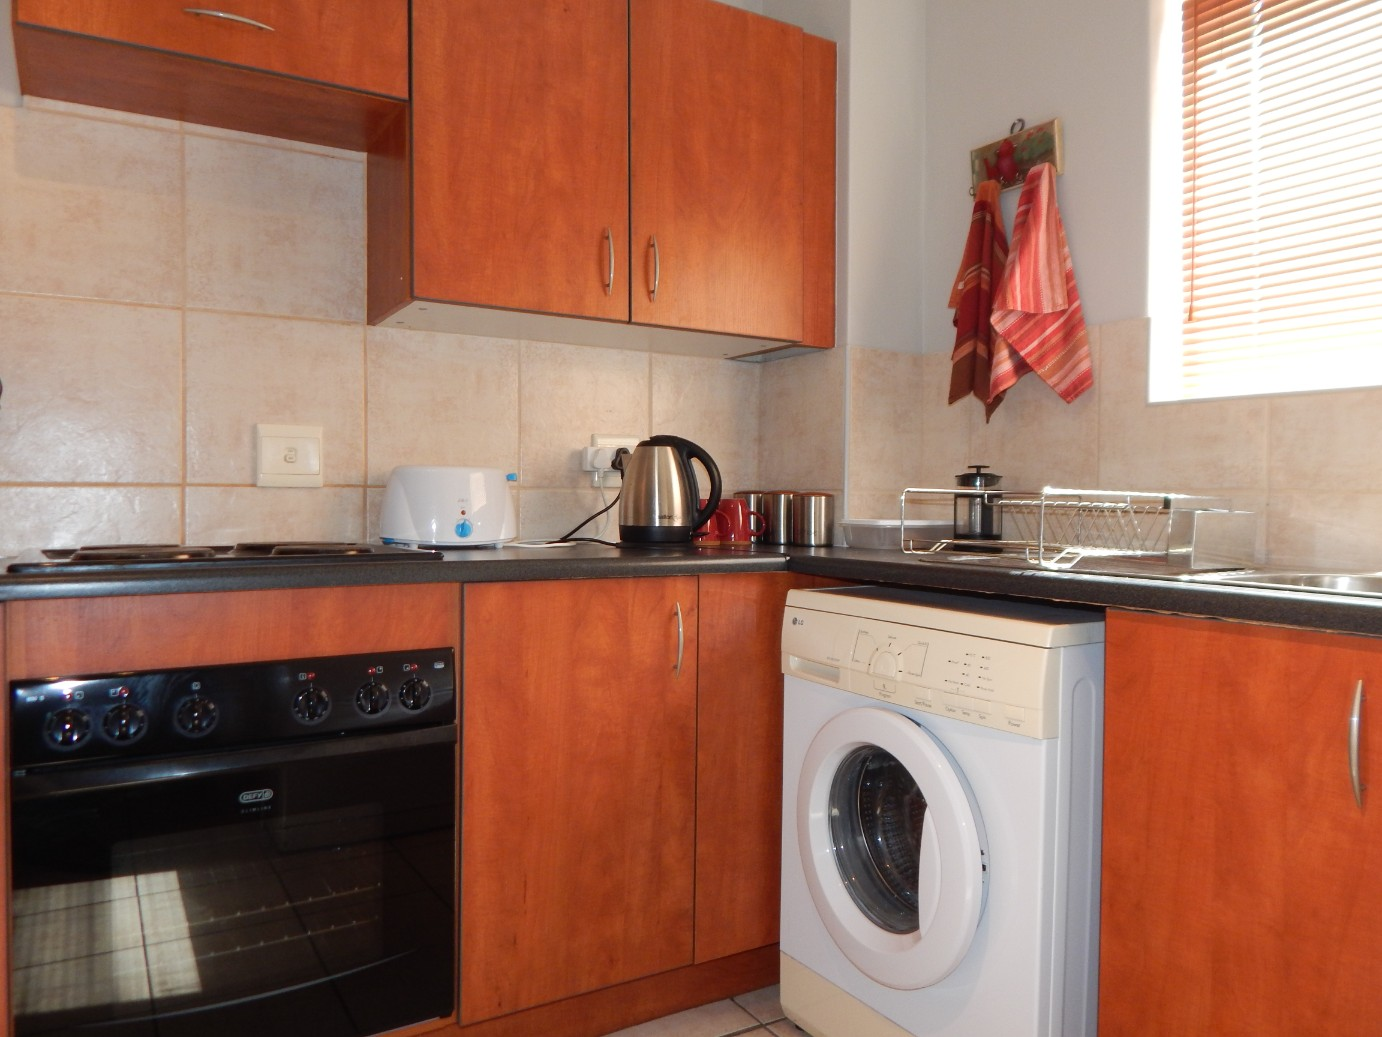 3 Bedroom Apartment for sale in Diaz Beach ENT0080239 : photo#6